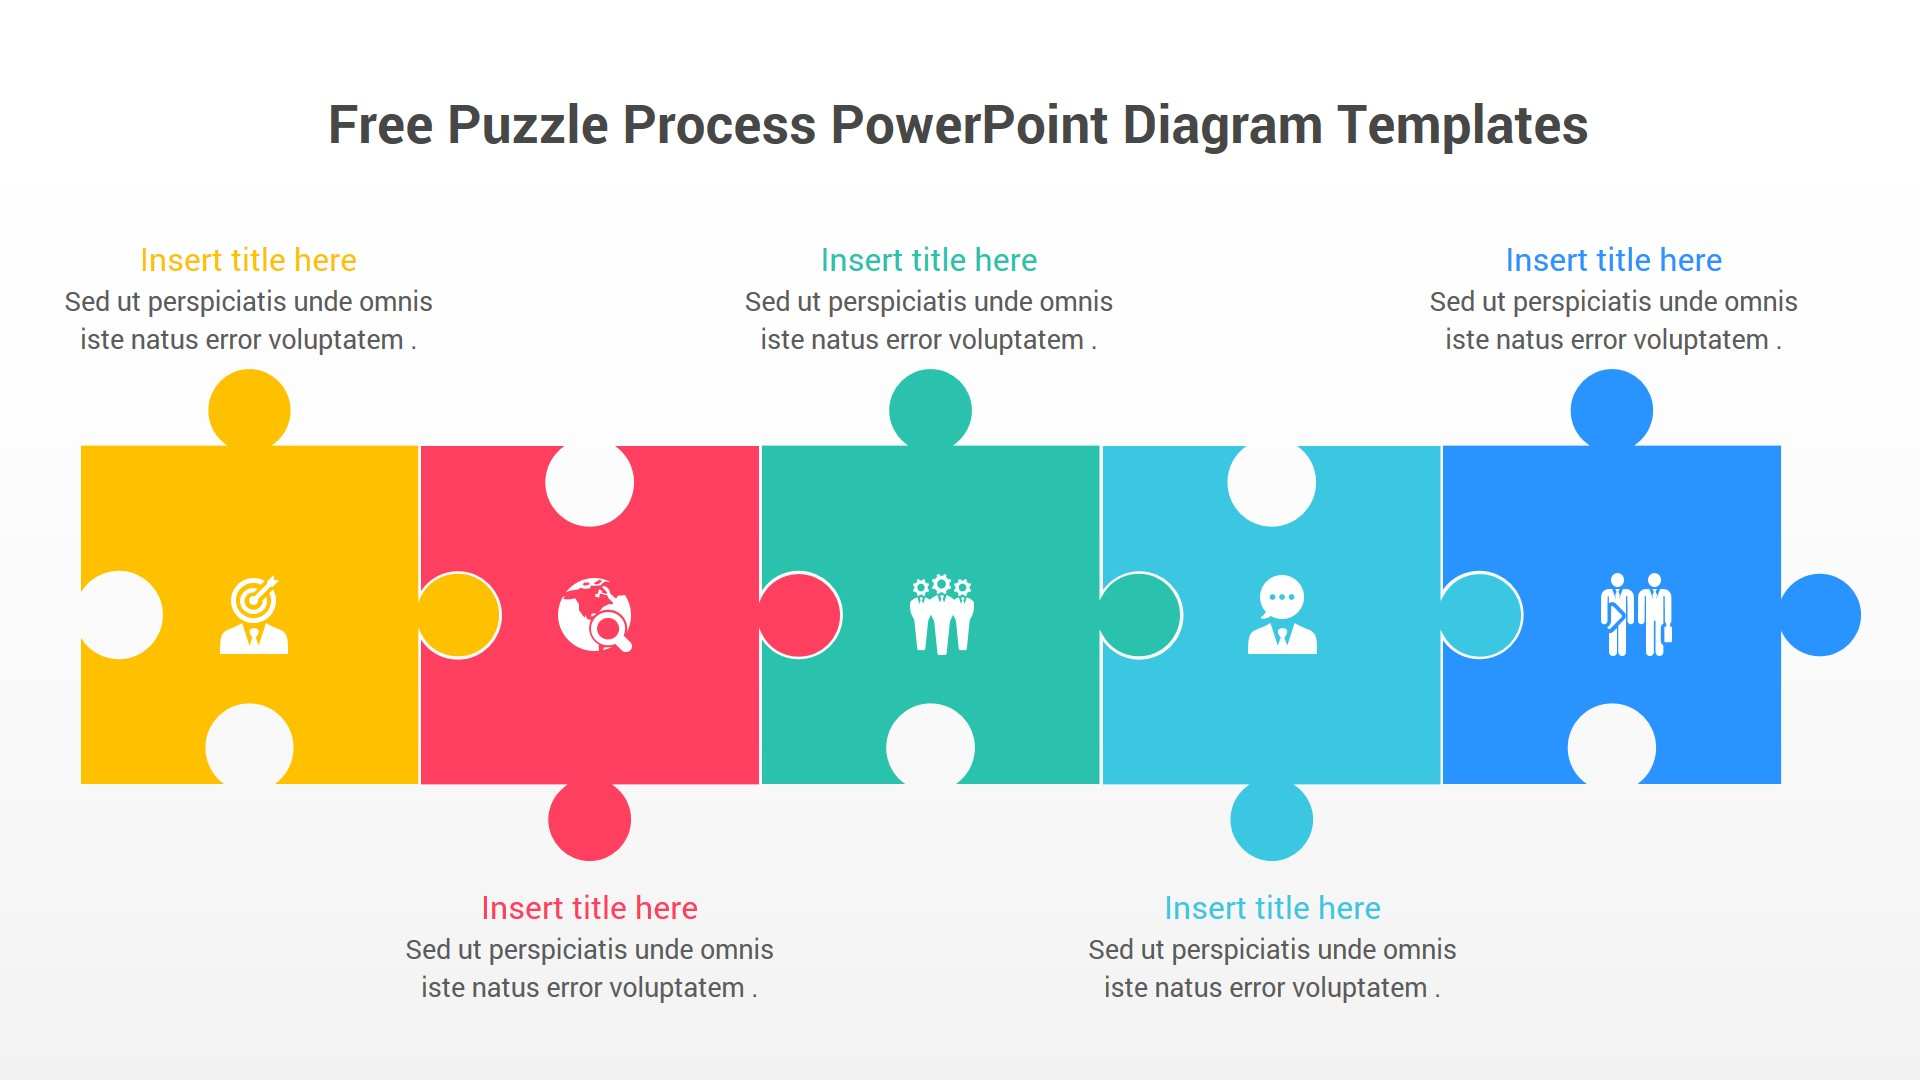 Free Puzzle Process PowerPoint Diagram Template